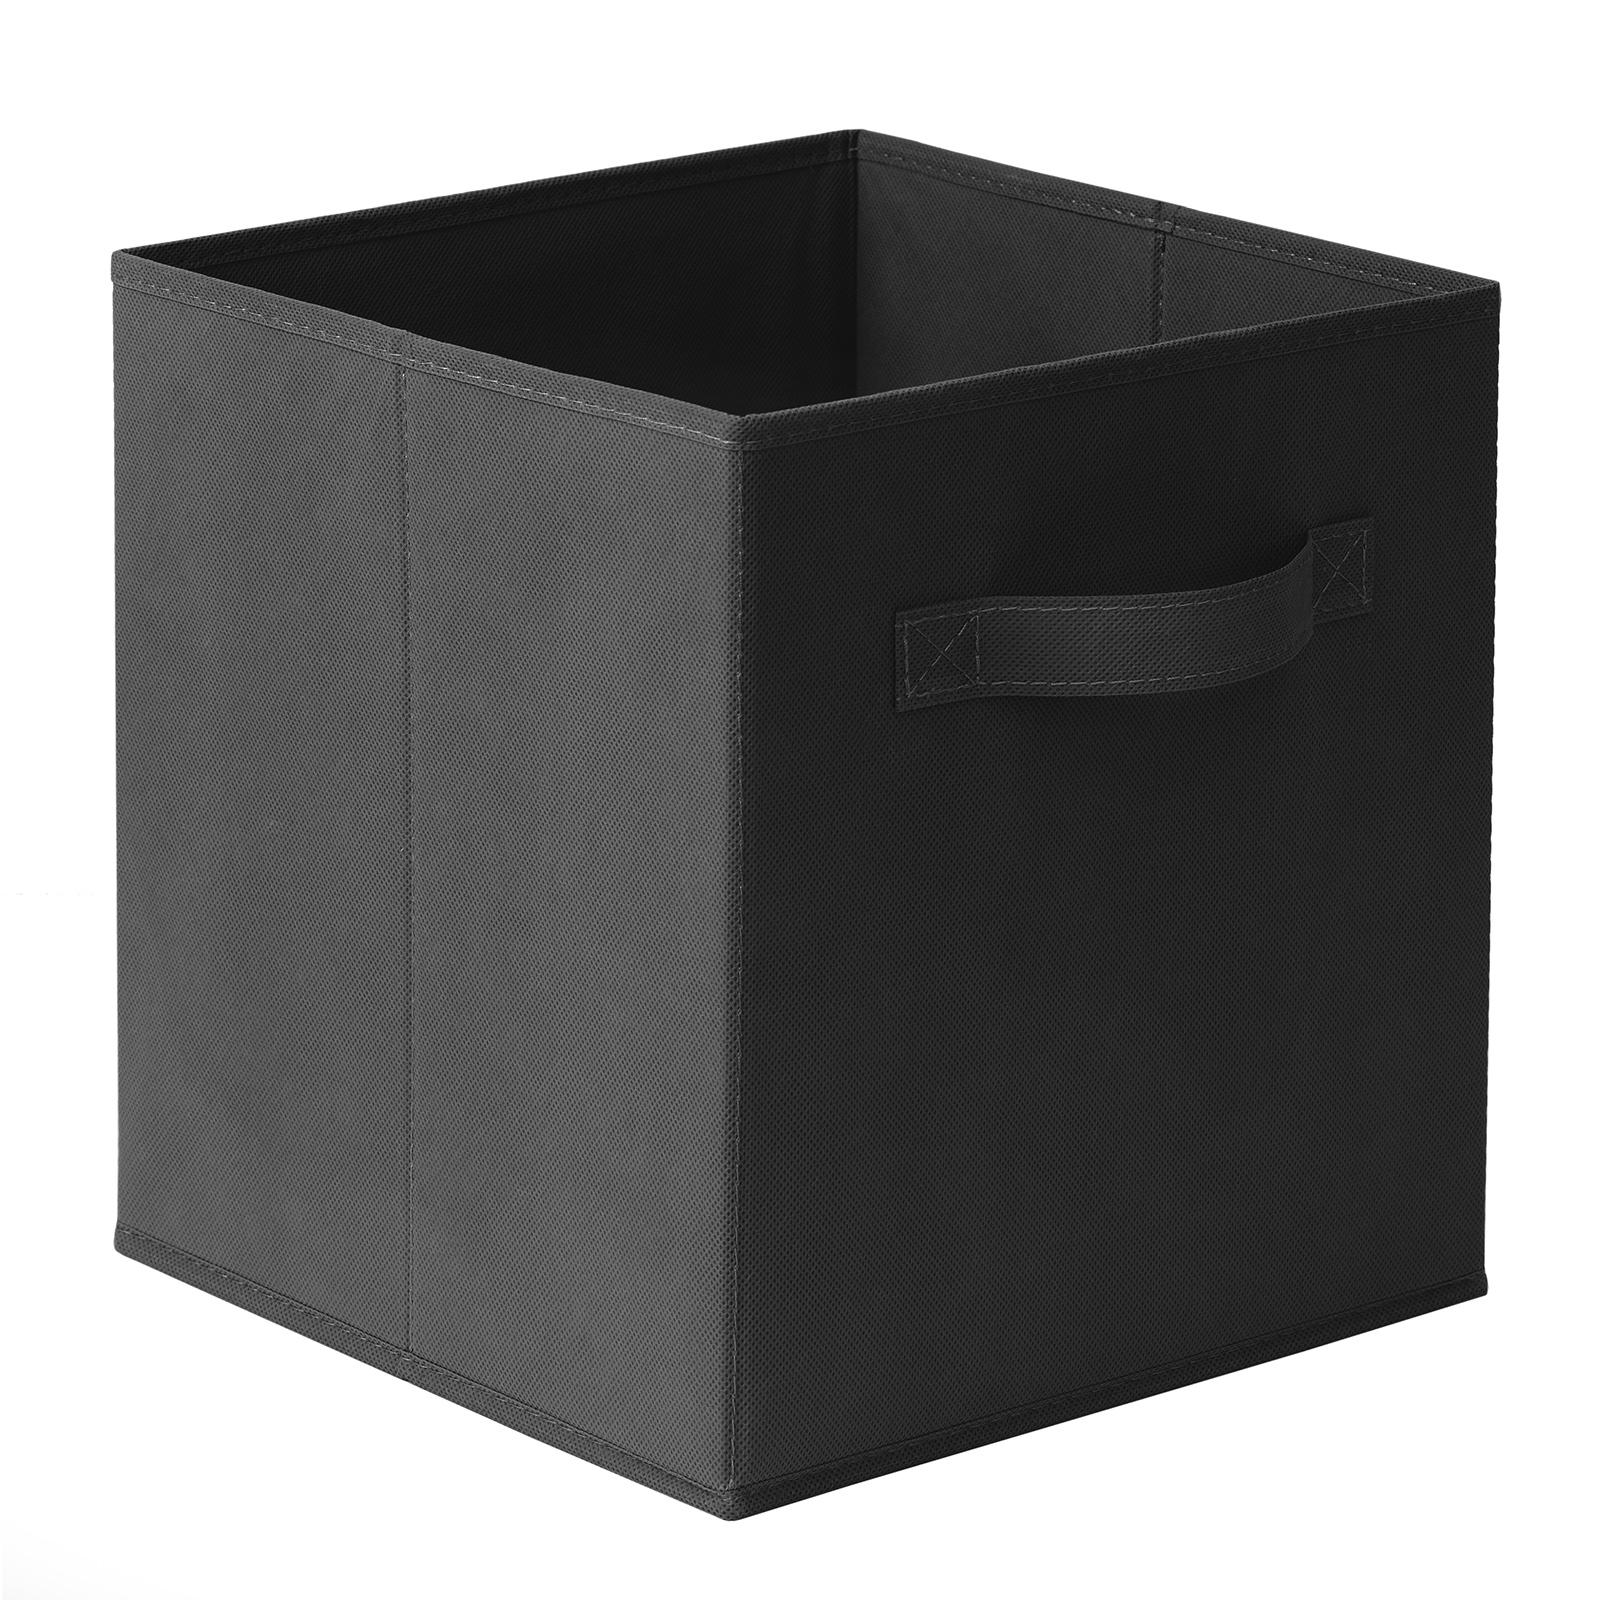 6-Collapsible-Foldable-Cloth-Fabric-Cubby-Cube-Storage-Bins-Baskets-for-Shelves thumbnail 17